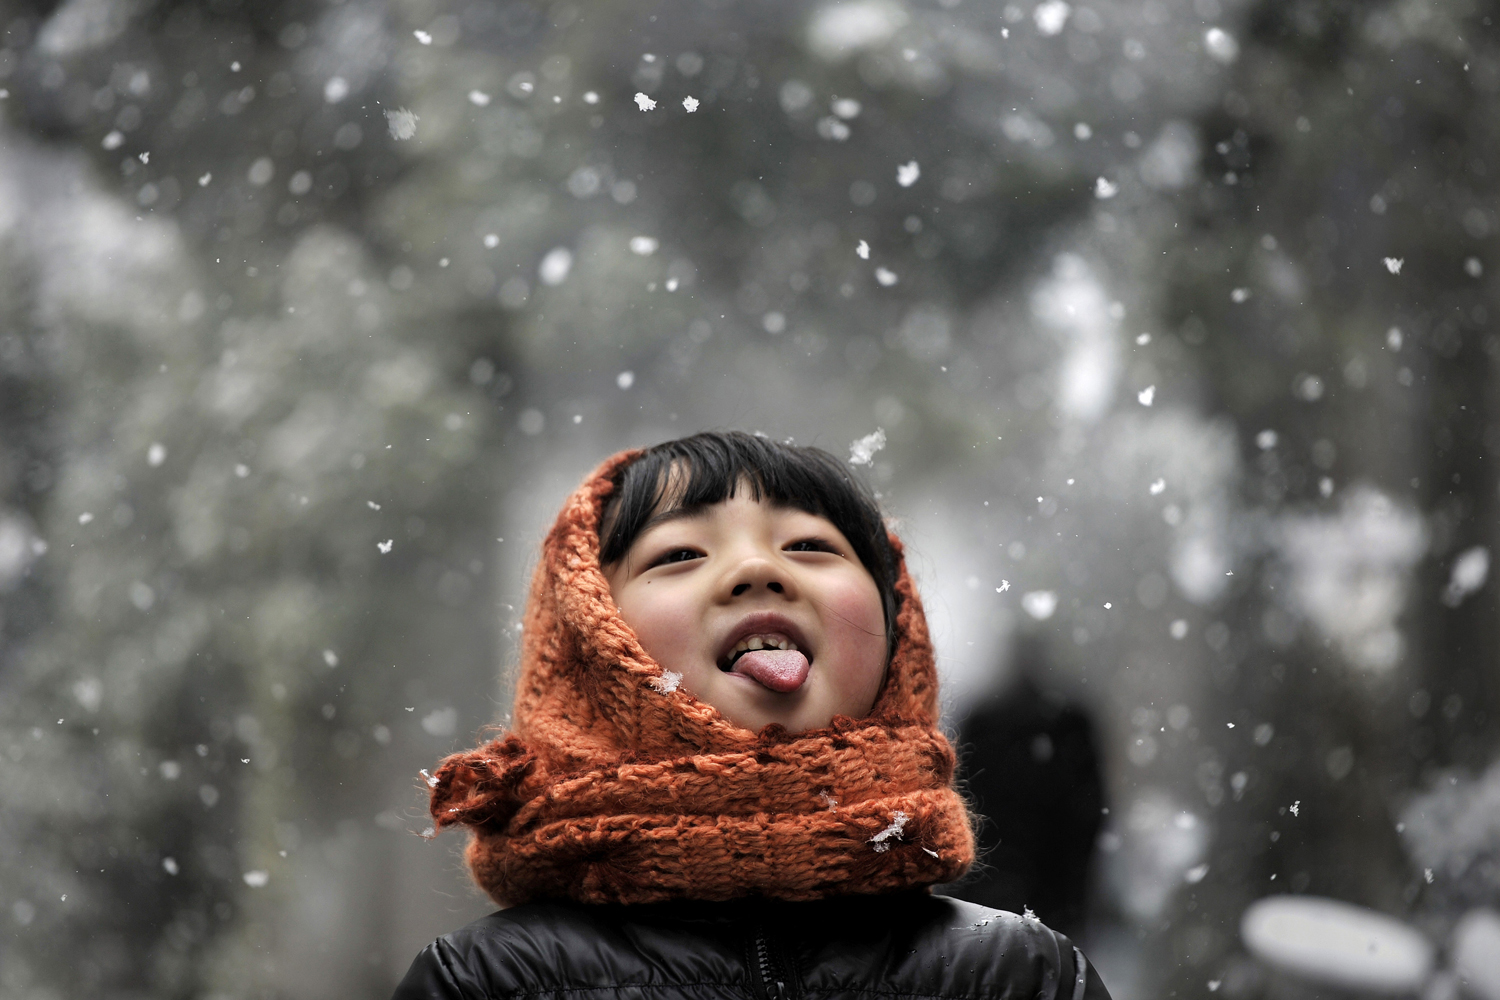 Feb. 13, 2014. A girl sticks out her tongue during snowfalls on a street in Hefei, Anhui province.